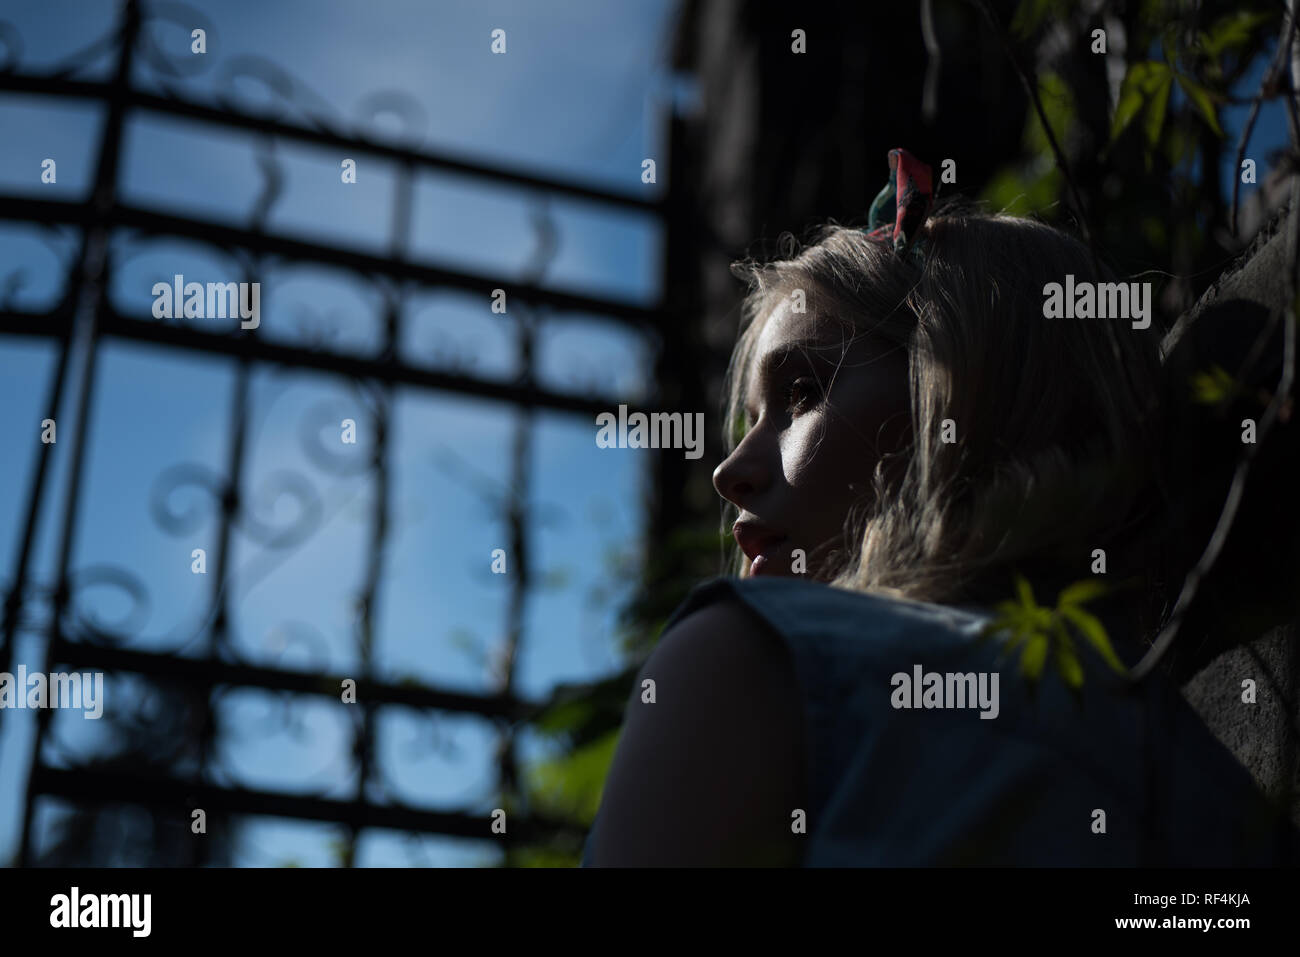 Side view frightened girl wearing headband standing behind tall gate at dusk. Pretty young lady with curled blond hair lost in park at night. Mysteries hidden by darkness Stock Photo